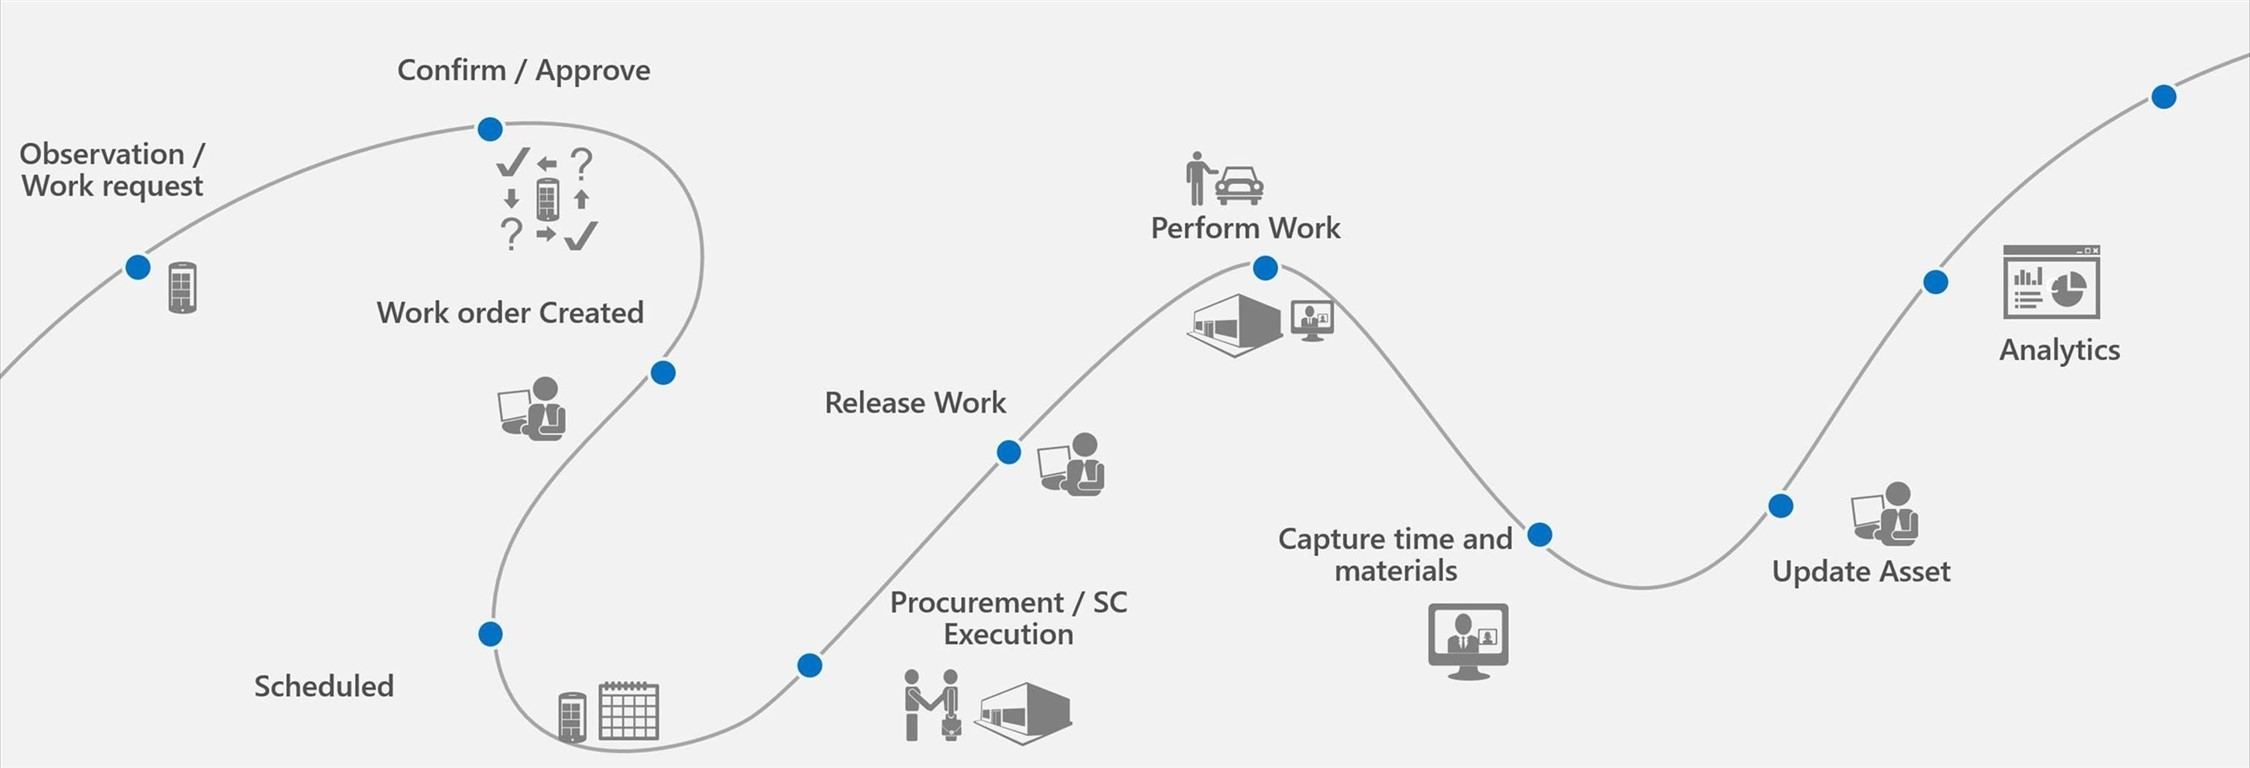 Get a clear view of assets with Microsoft field service